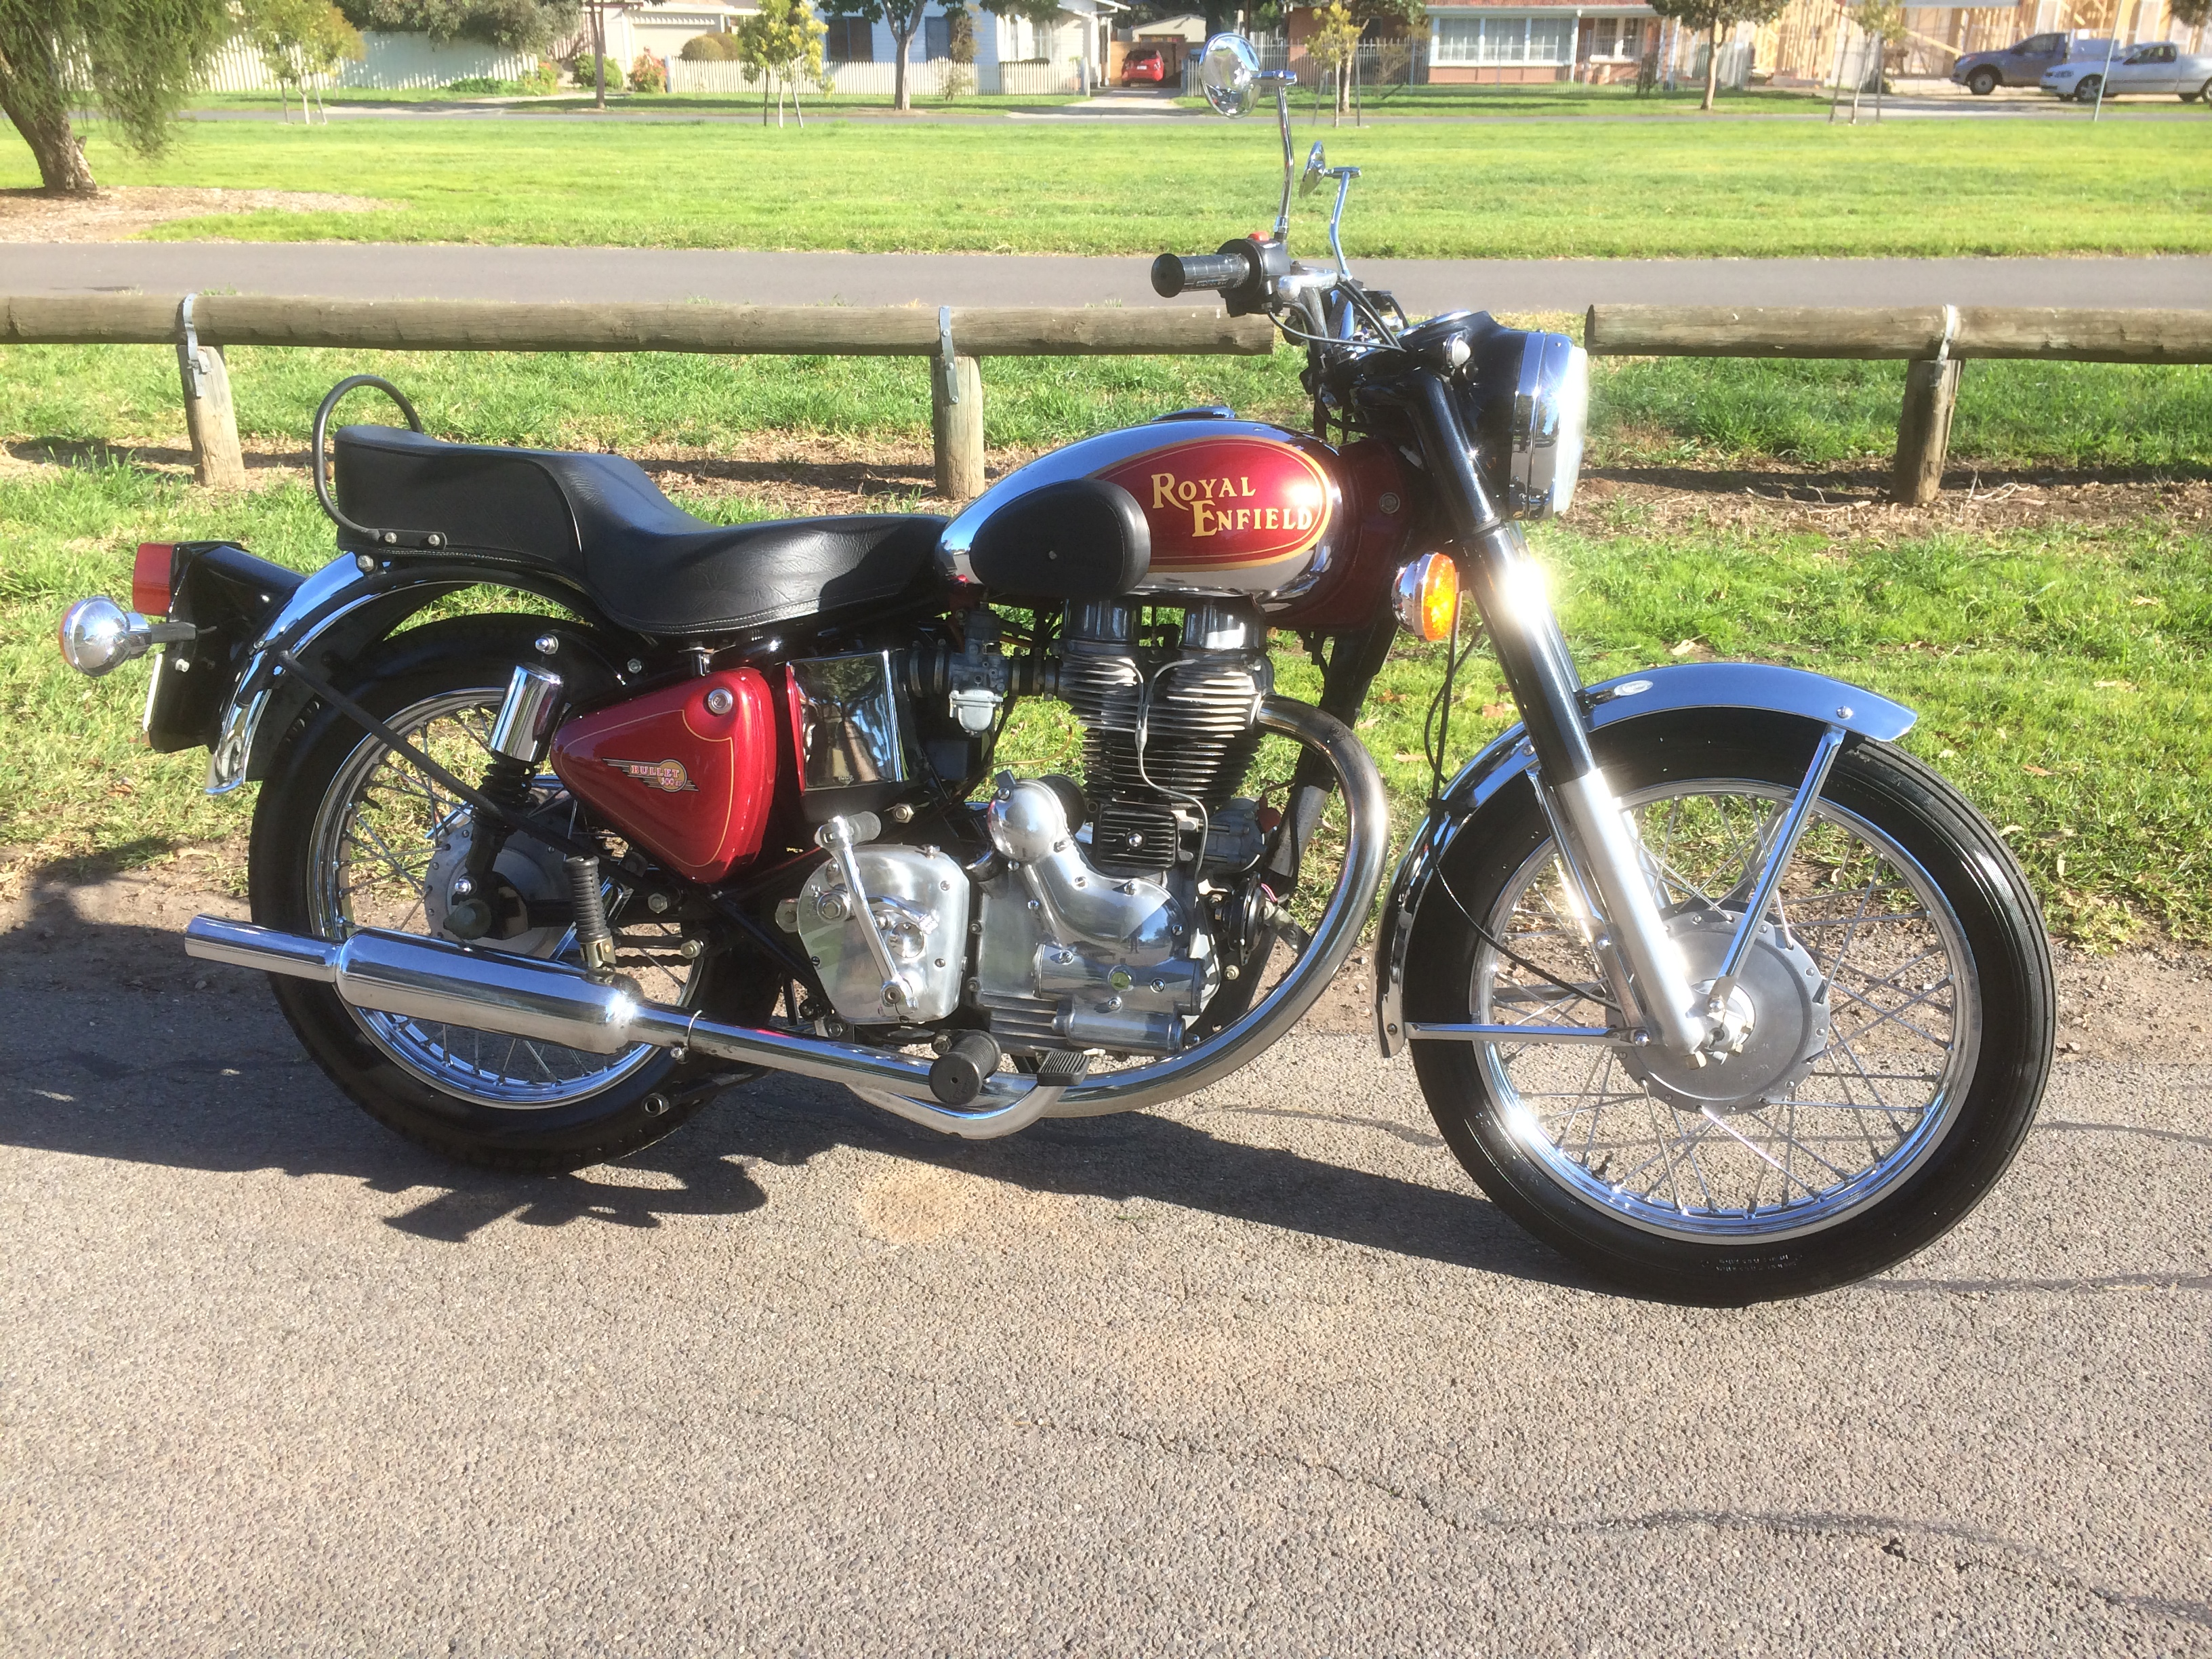 Royal Enfield Bullet 350 Classic 2005 images #123547